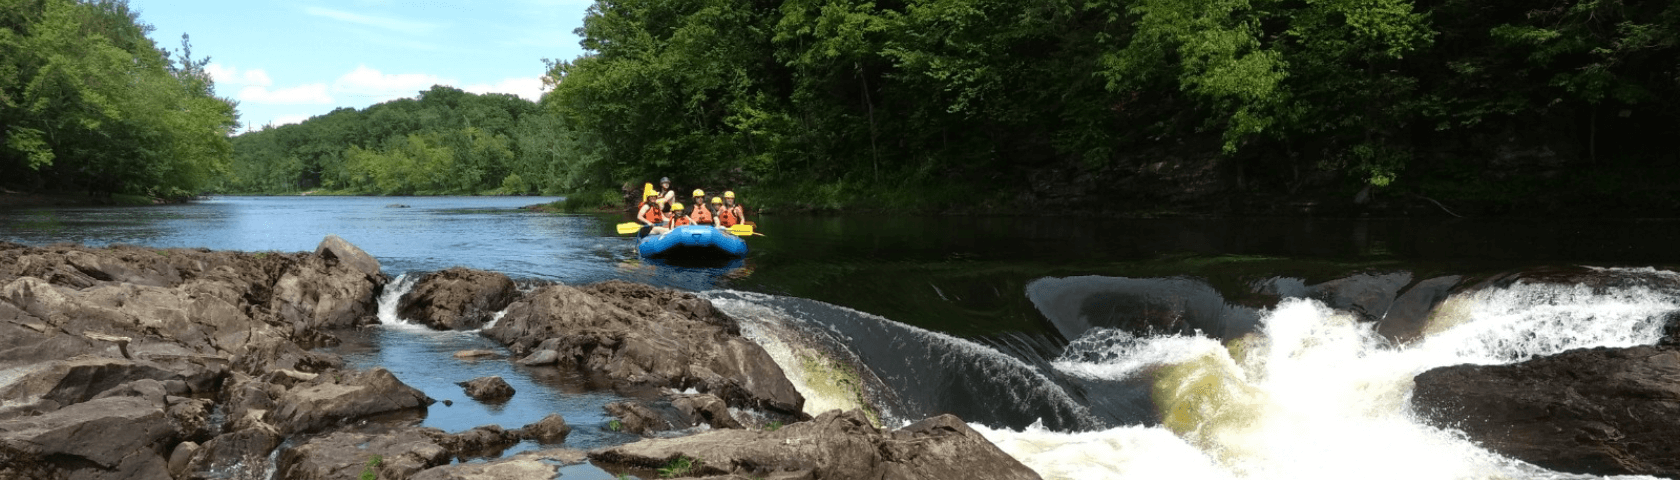 Raft group approaching a small rapid